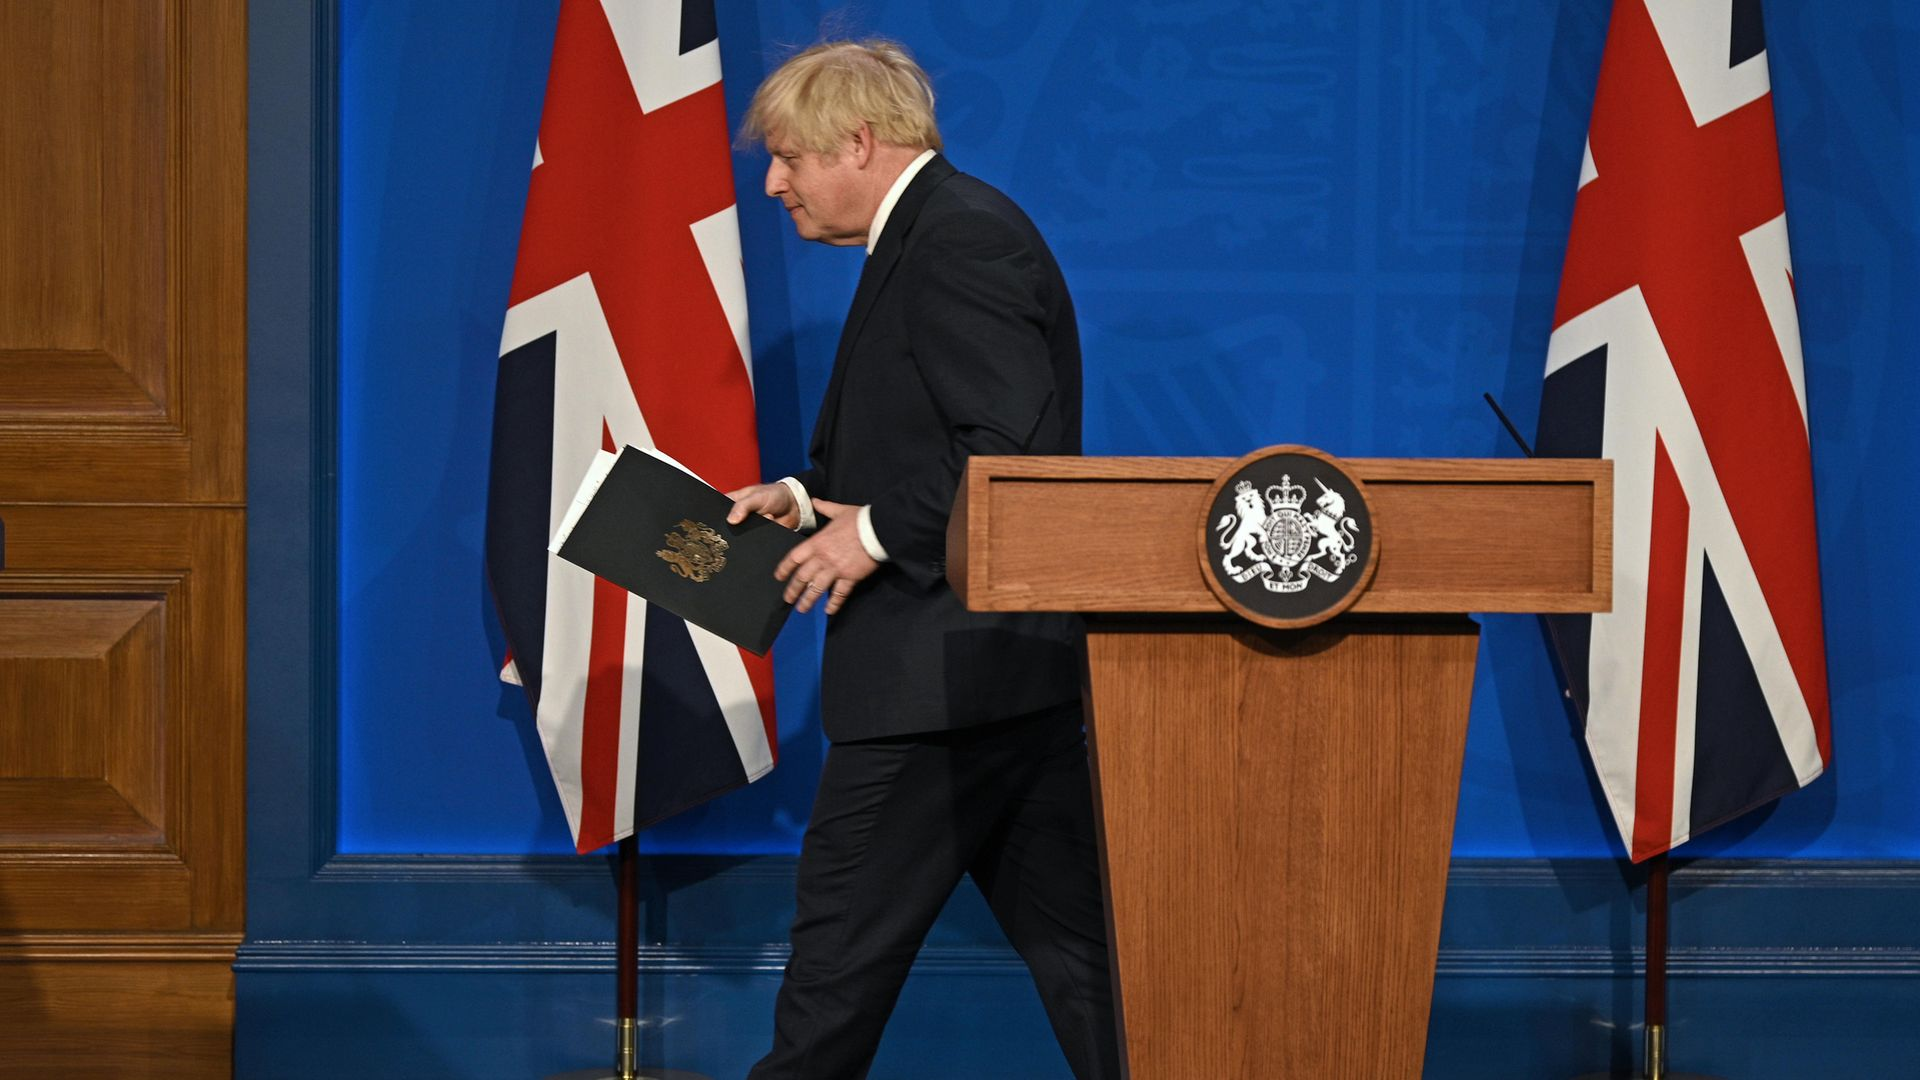 Prime Minister Boris Johnson during a media briefing in Downing Street - Credit: PA